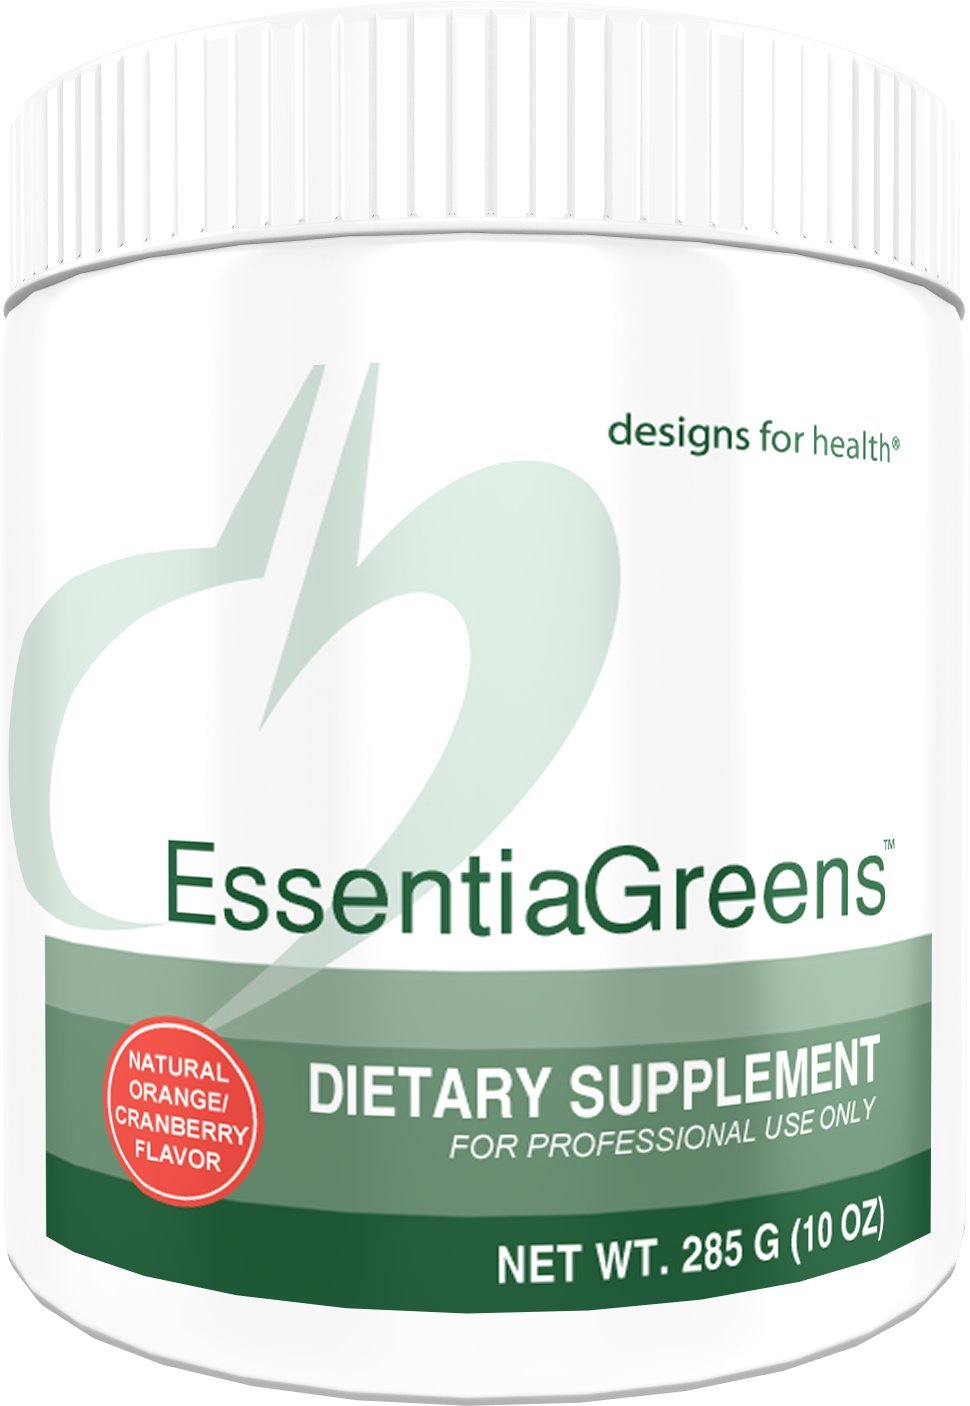 Designs for Health Green Smoothie Powder - EssentiaGreens Gluten-Free Powder with Organic Alkalizing Vegetables + Prebiotic Fiber (285g, 28 Servings)